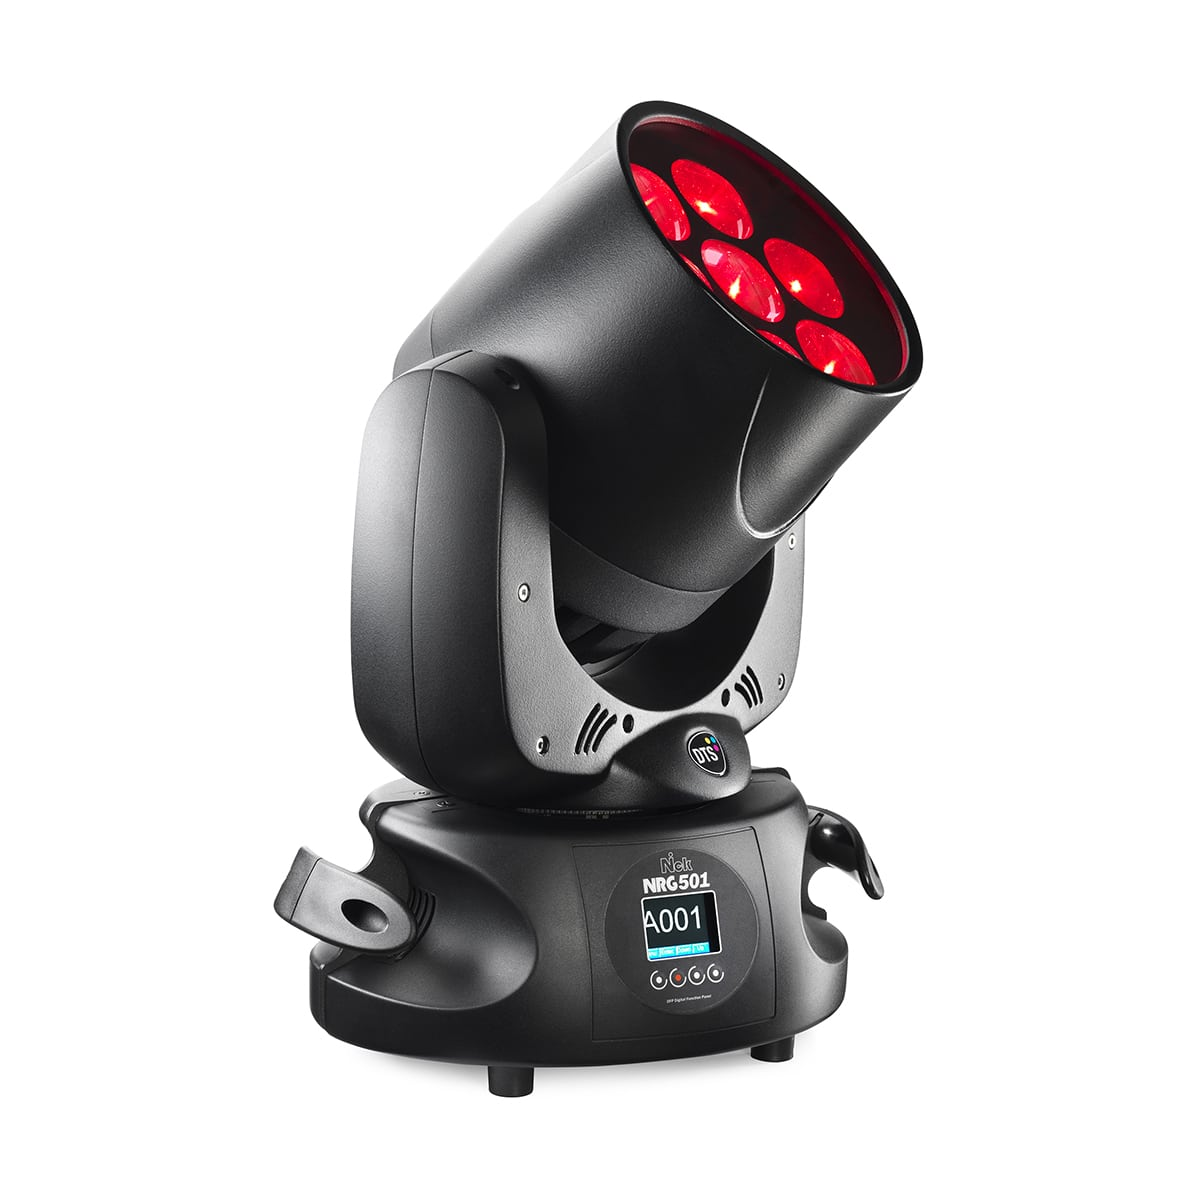 Teste Mobili Led Nick Nrg 501 Compact And Versatile Led Moving Head